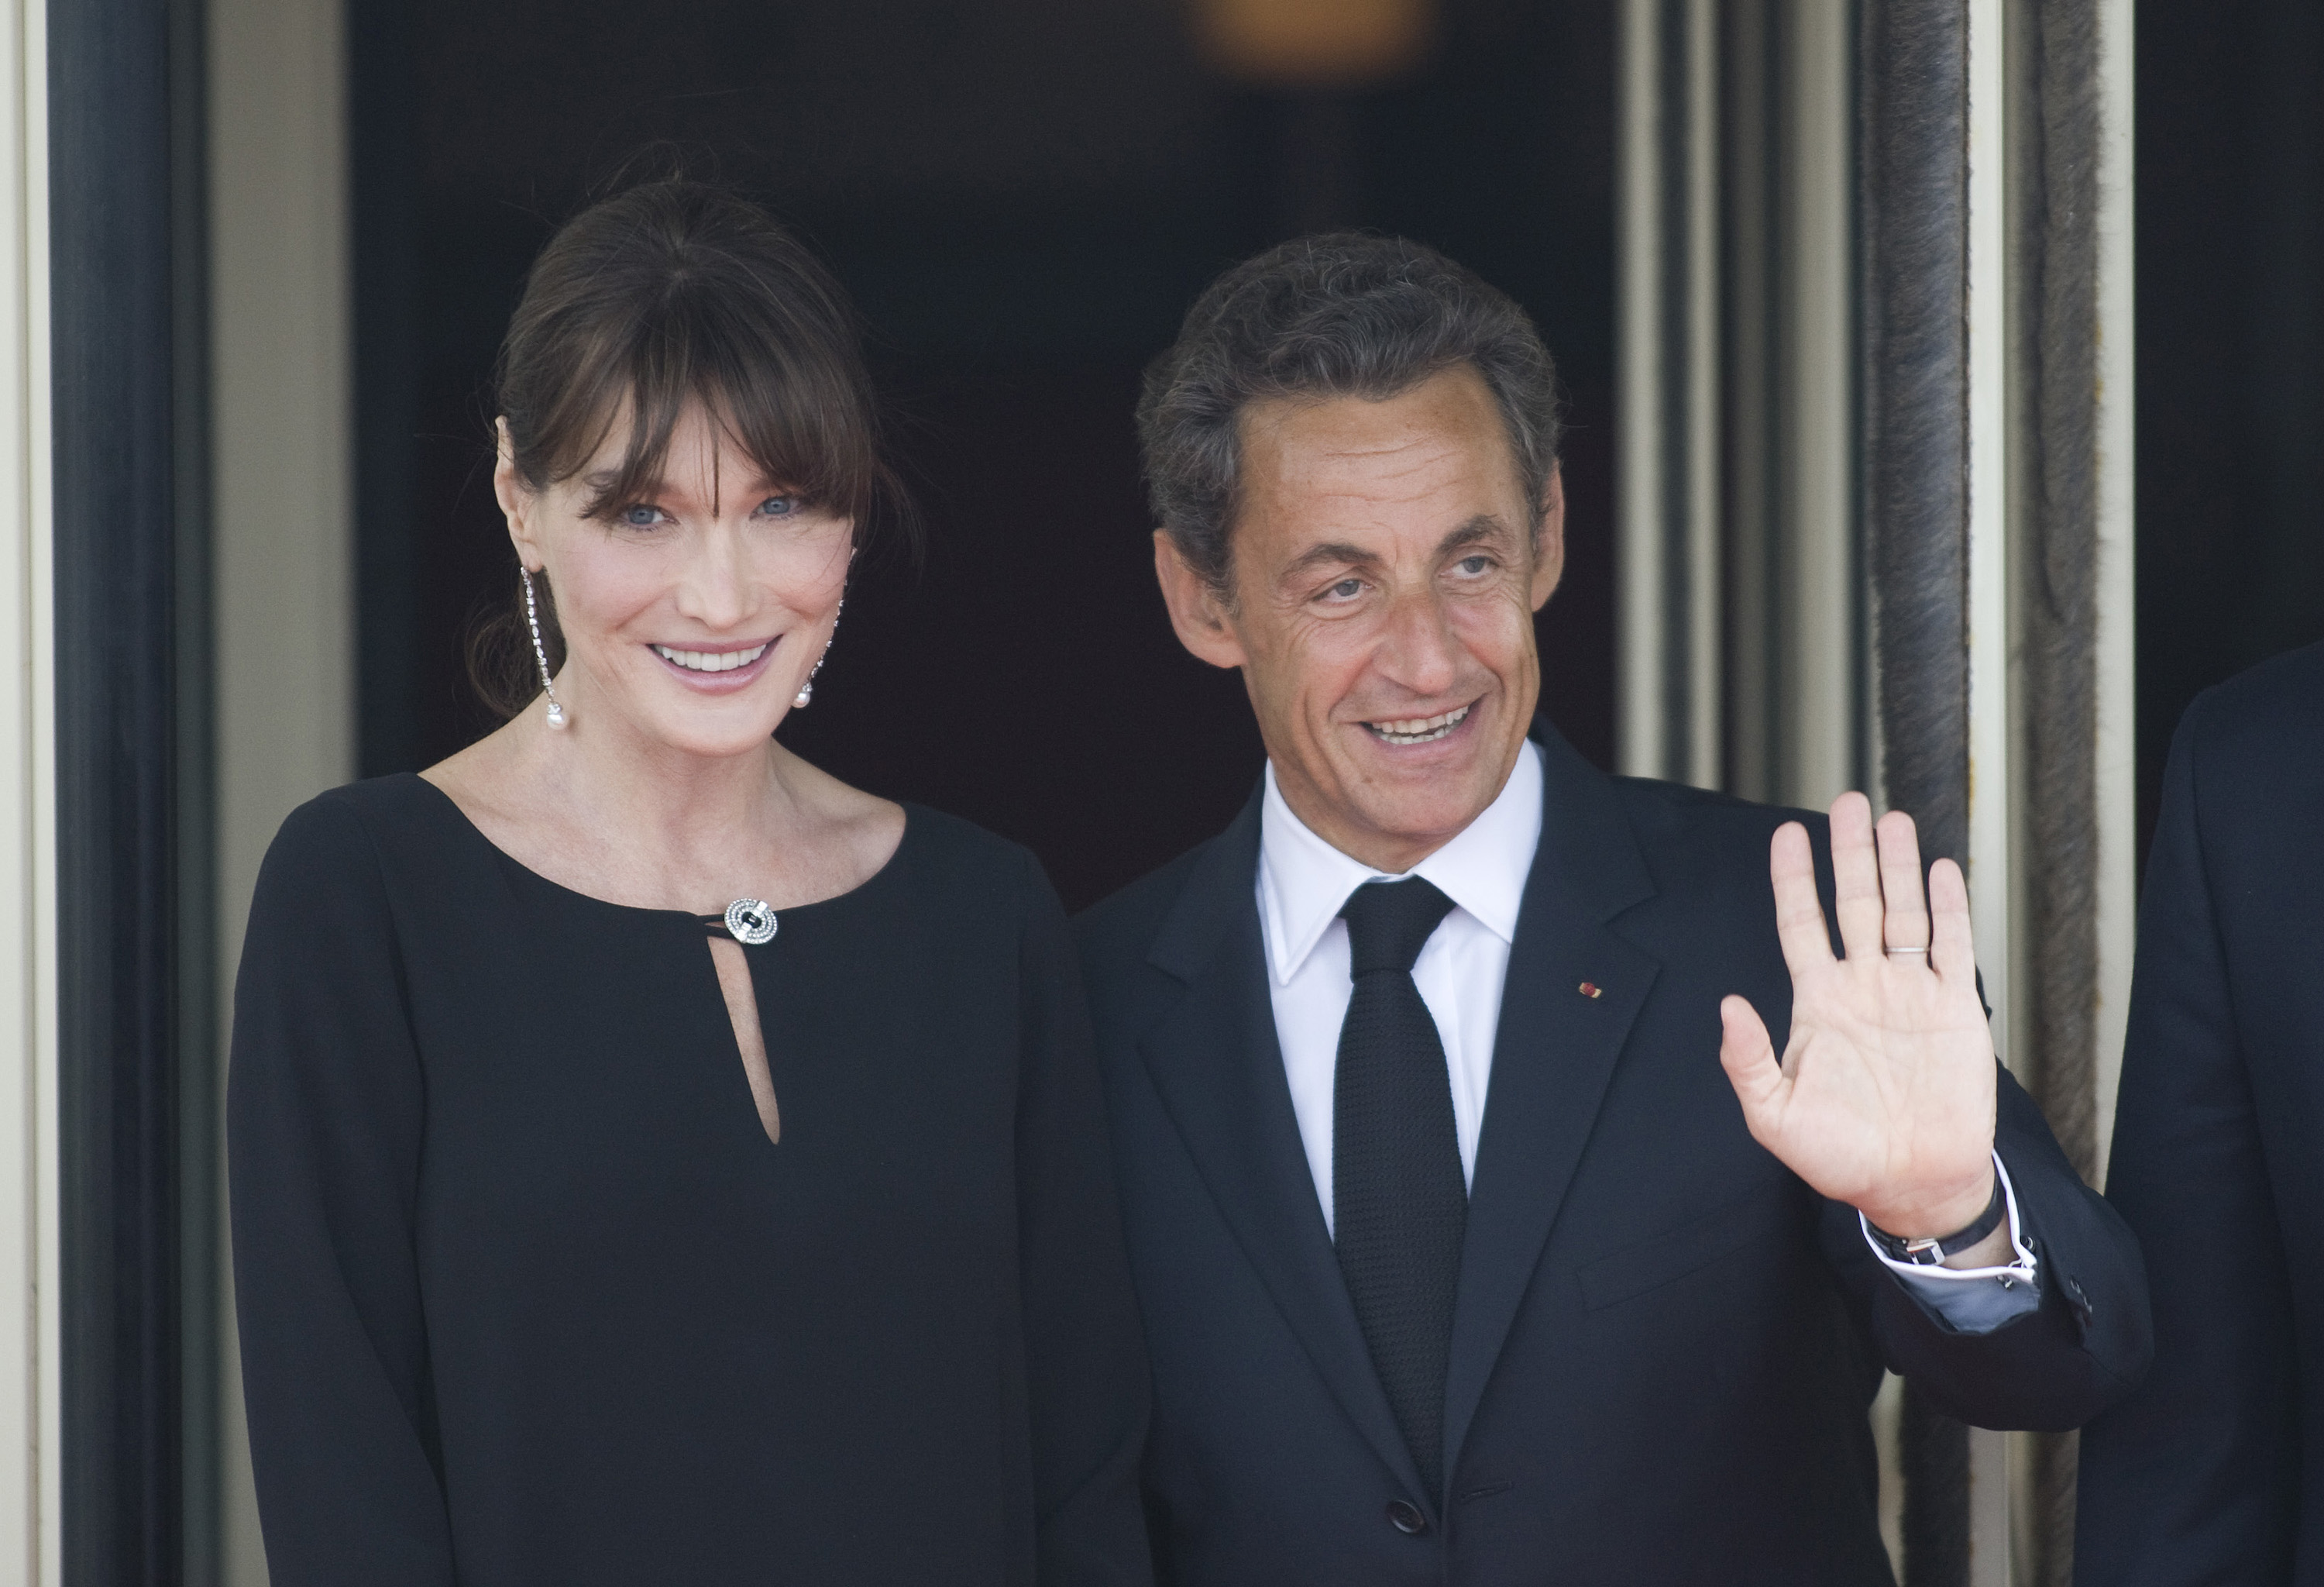 DEAUVILLE, FRANCE - MAY 26:  French President Nicolas Sarkozy and his pregnant wife Carla Bruni-Sarkozy await the arrival of G8 member state leaders and their spouses for an evening dinner function at Le Ciro's Restaurant at the G8 Summit on May 26, 2011 in Deauville, France.  Heads of the world's wealthiest nations are meeting in Deauville, France, for the G8 summit to discuss various security, aid and trade issues, including the 'Arab Spring', nuclear safety and climate change. (Photo by Chris Ratcliffe - Pool/Getty Images)